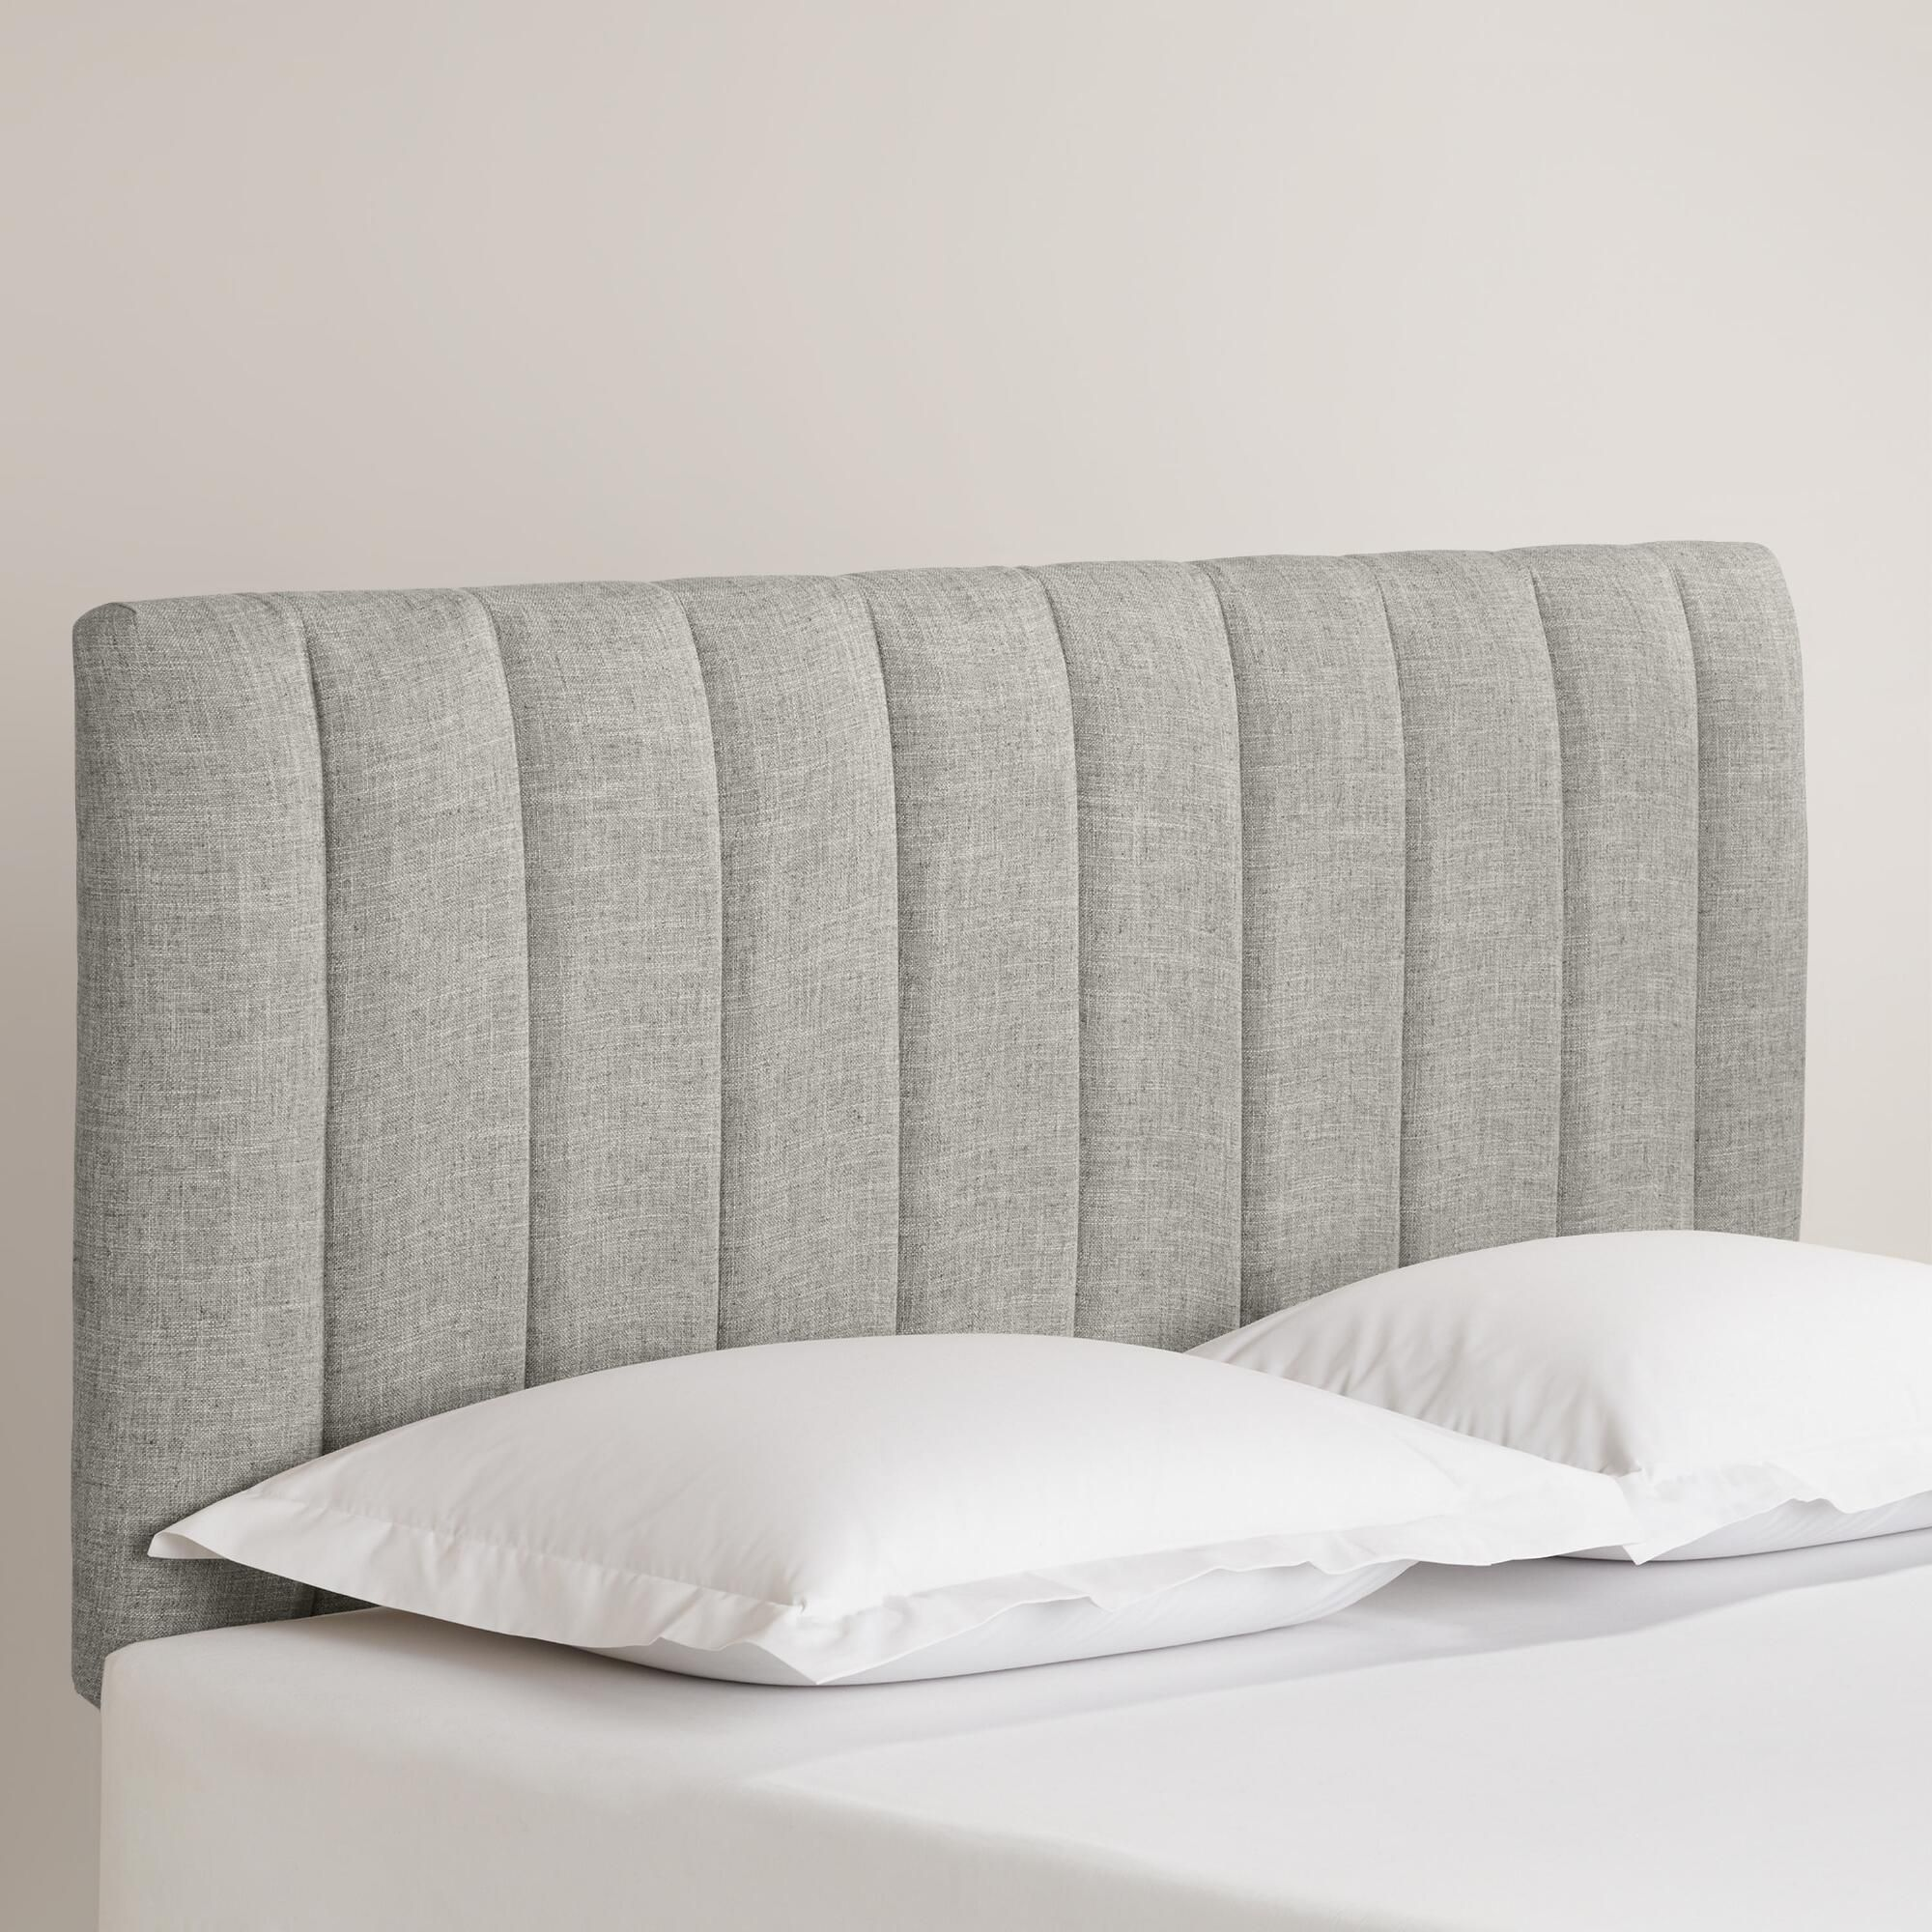 Custom Upholstered Headboards linen reilly upholstered headboard | cleanses, colors and the o'jays